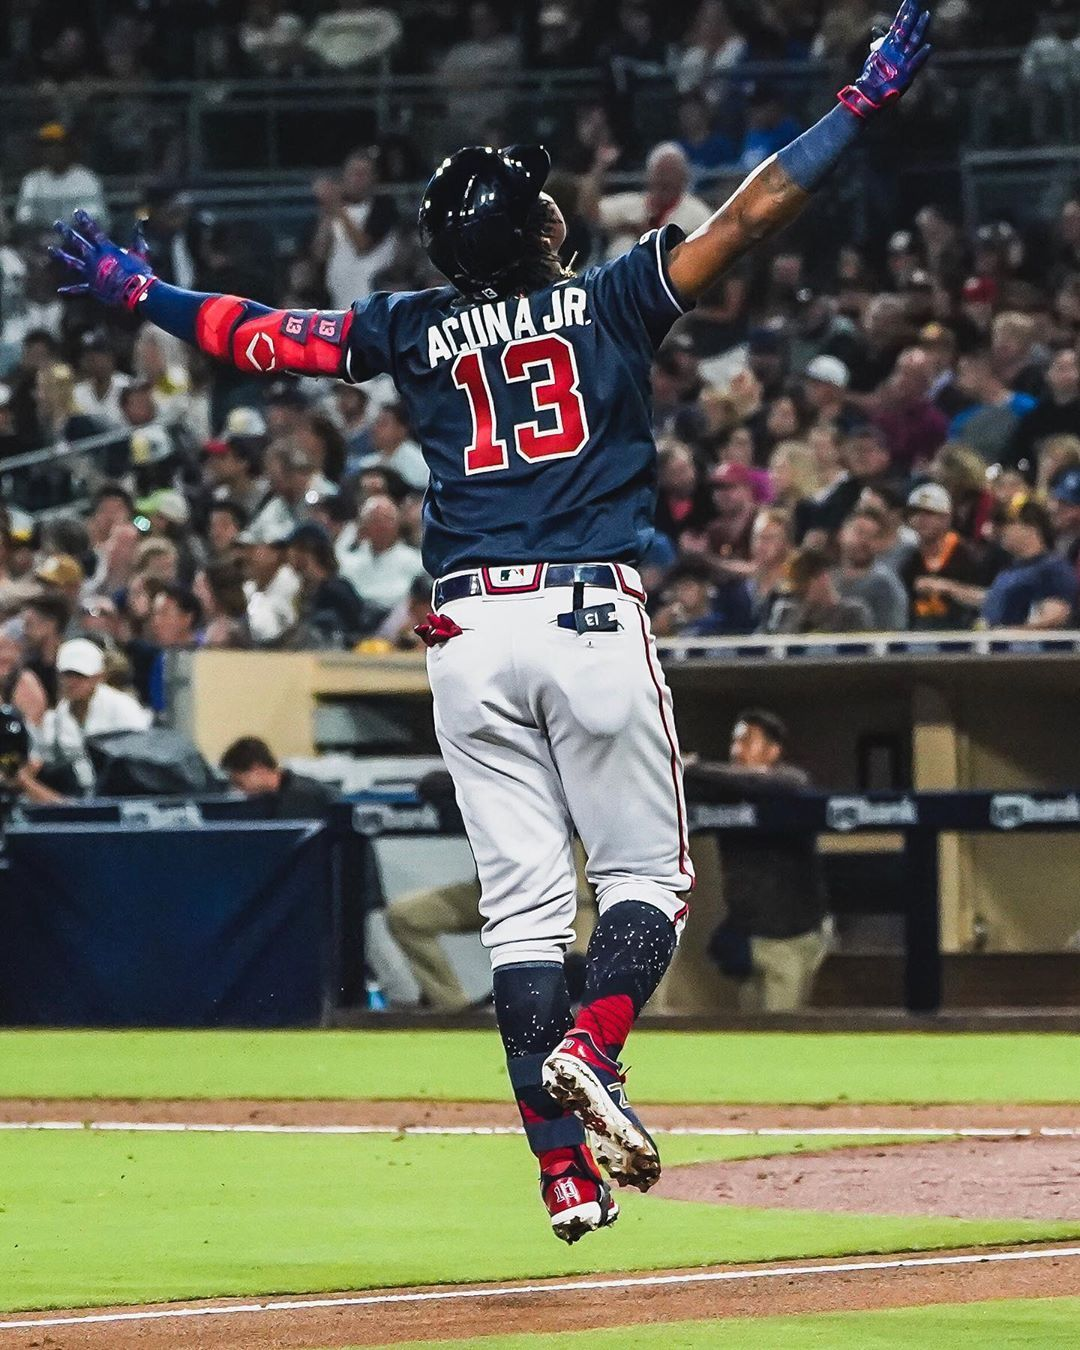 Mlb The Home Run Derby Messes With Your Swi Baseball Big4 Bigfour Big4 Bigfour Big4 Bigfour Homerun Atlanta Braves Baby Atlanta Braves